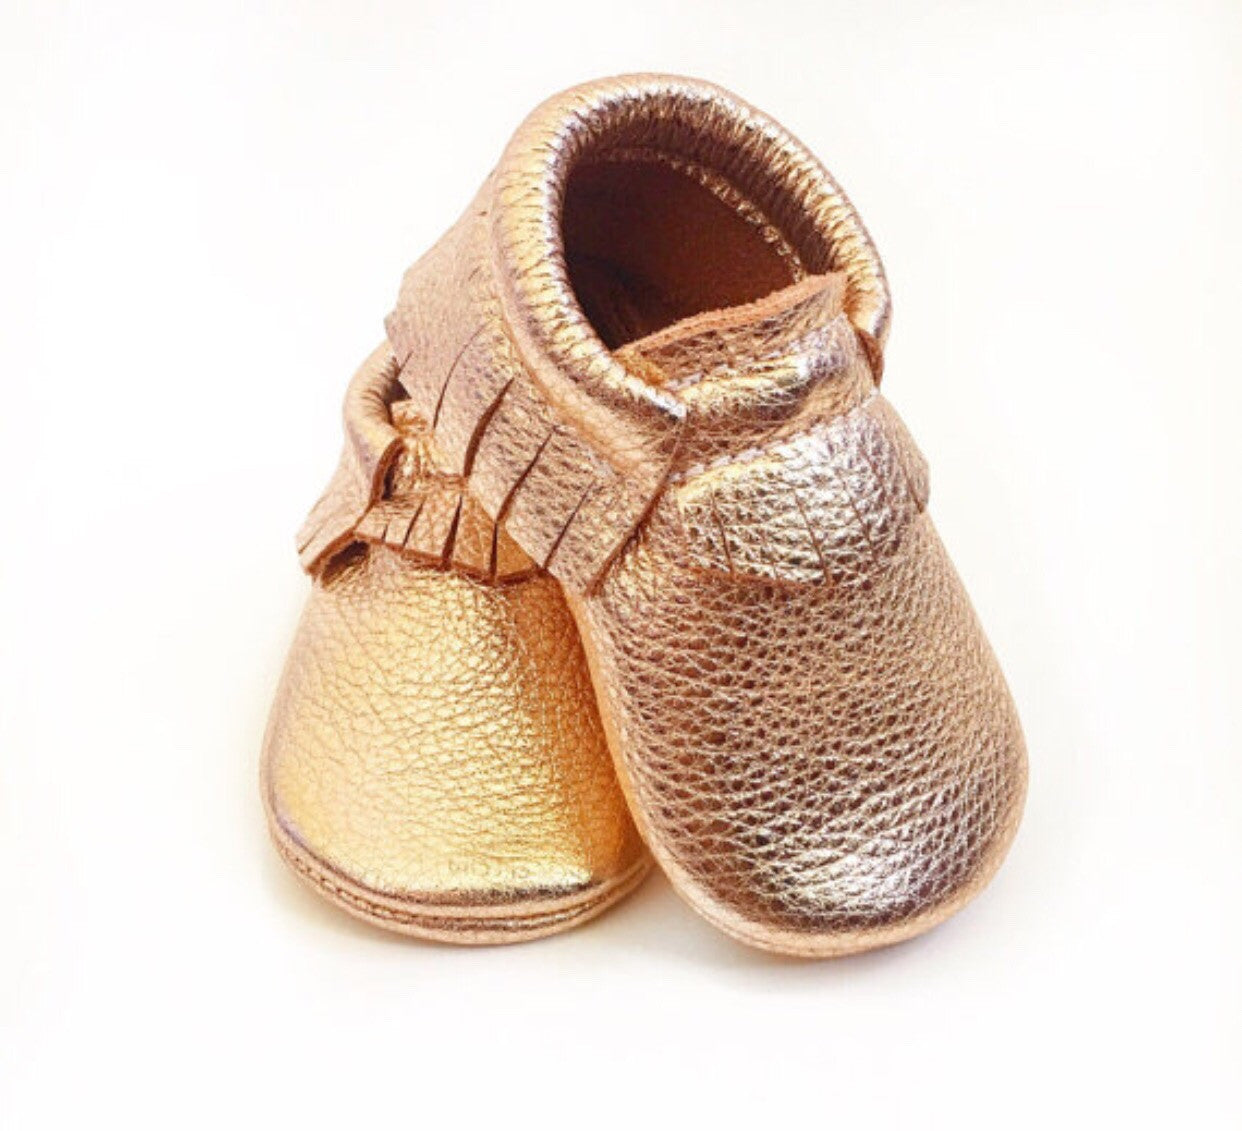 ce970b5134f39 Baby Moccasins - Rose Gold